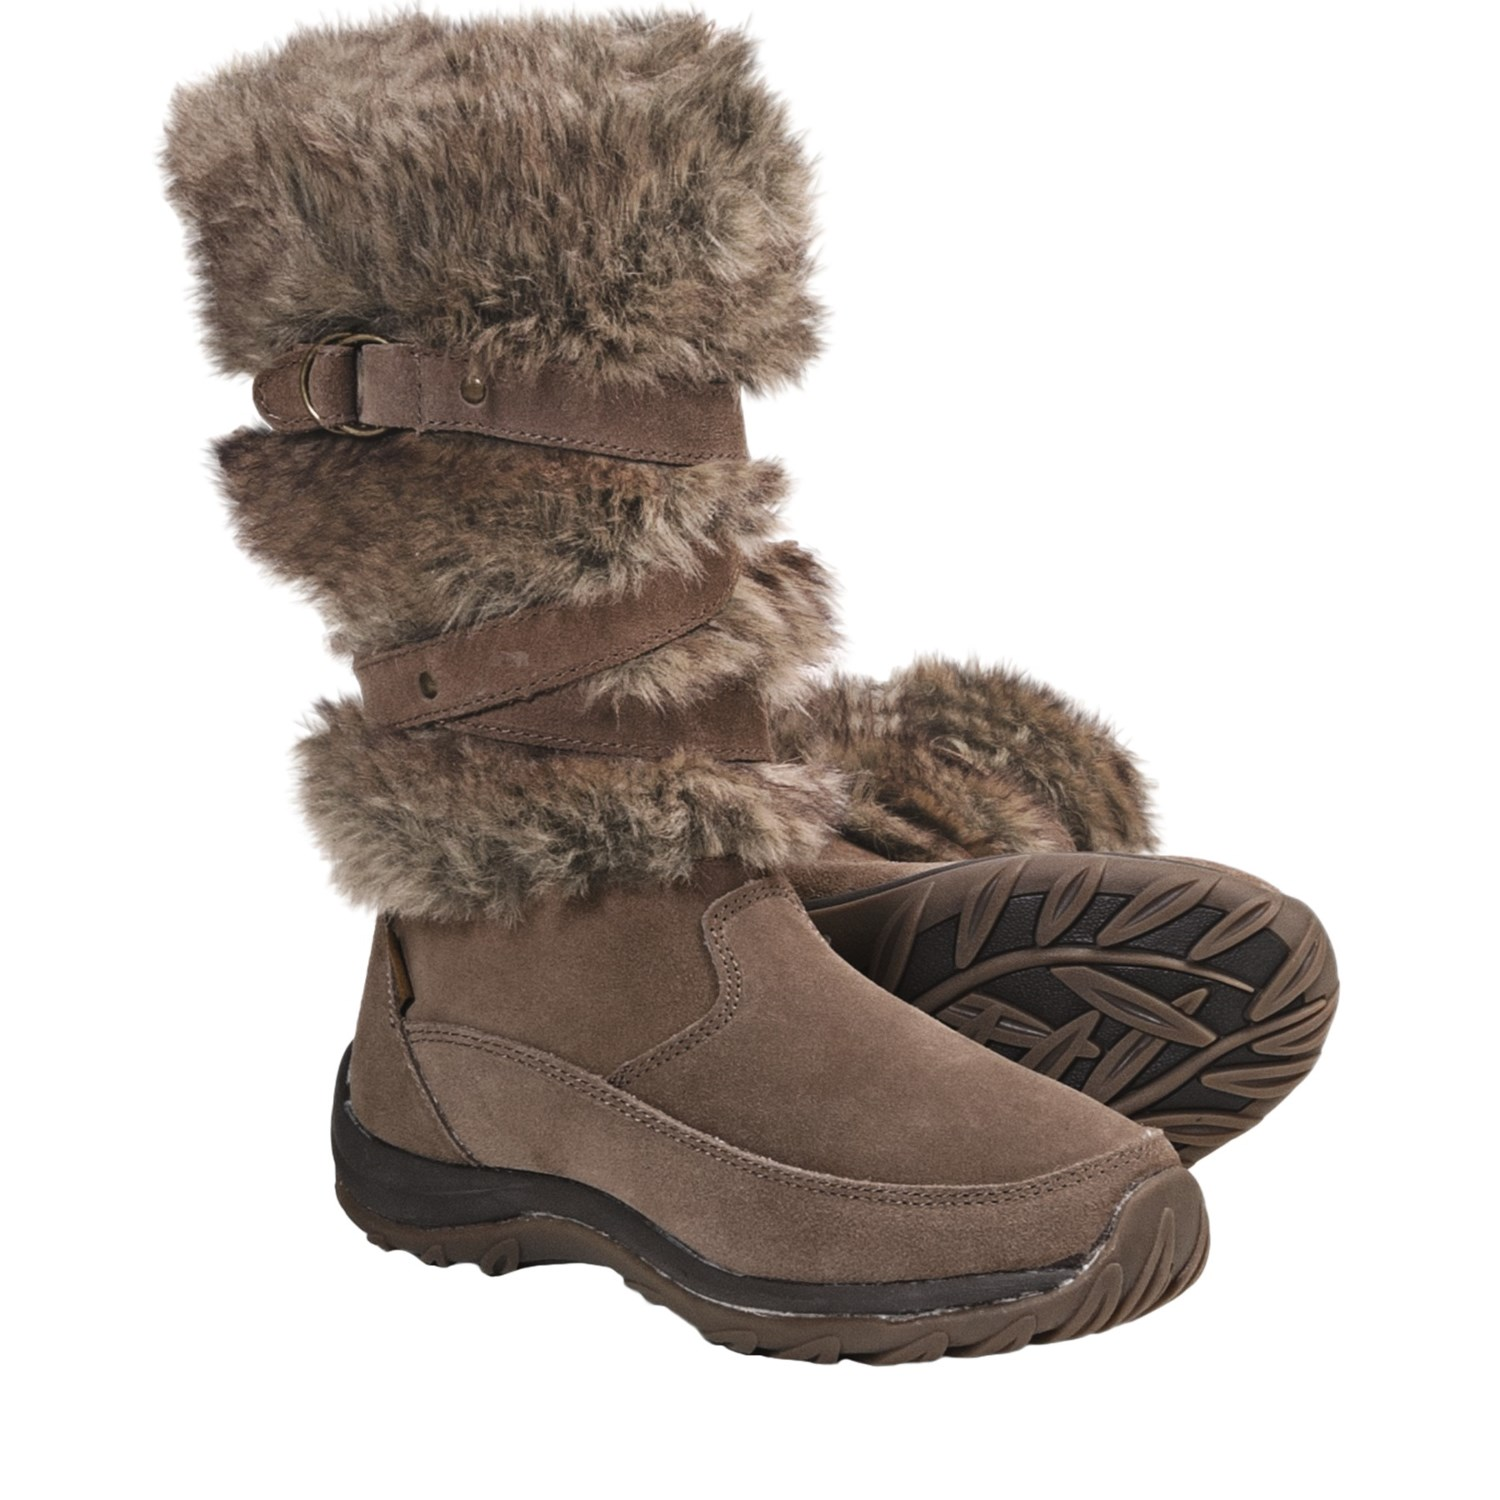 Khombu Marker Faux Fur Winter Boots (For Women) 4820A